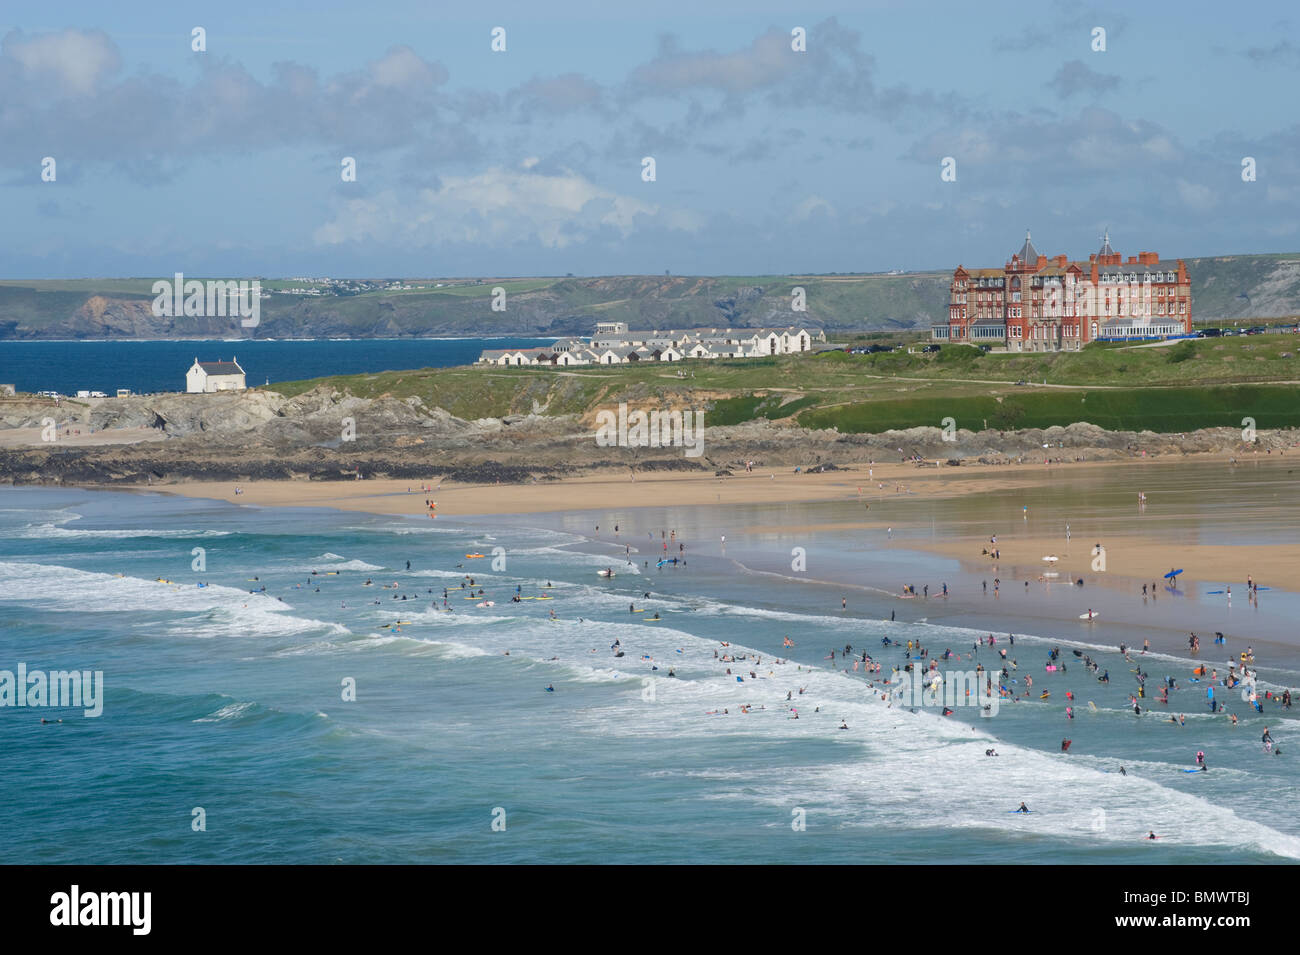 People swimming and body boarding at a beach near Newquay in Cornwall, England - Stock Image